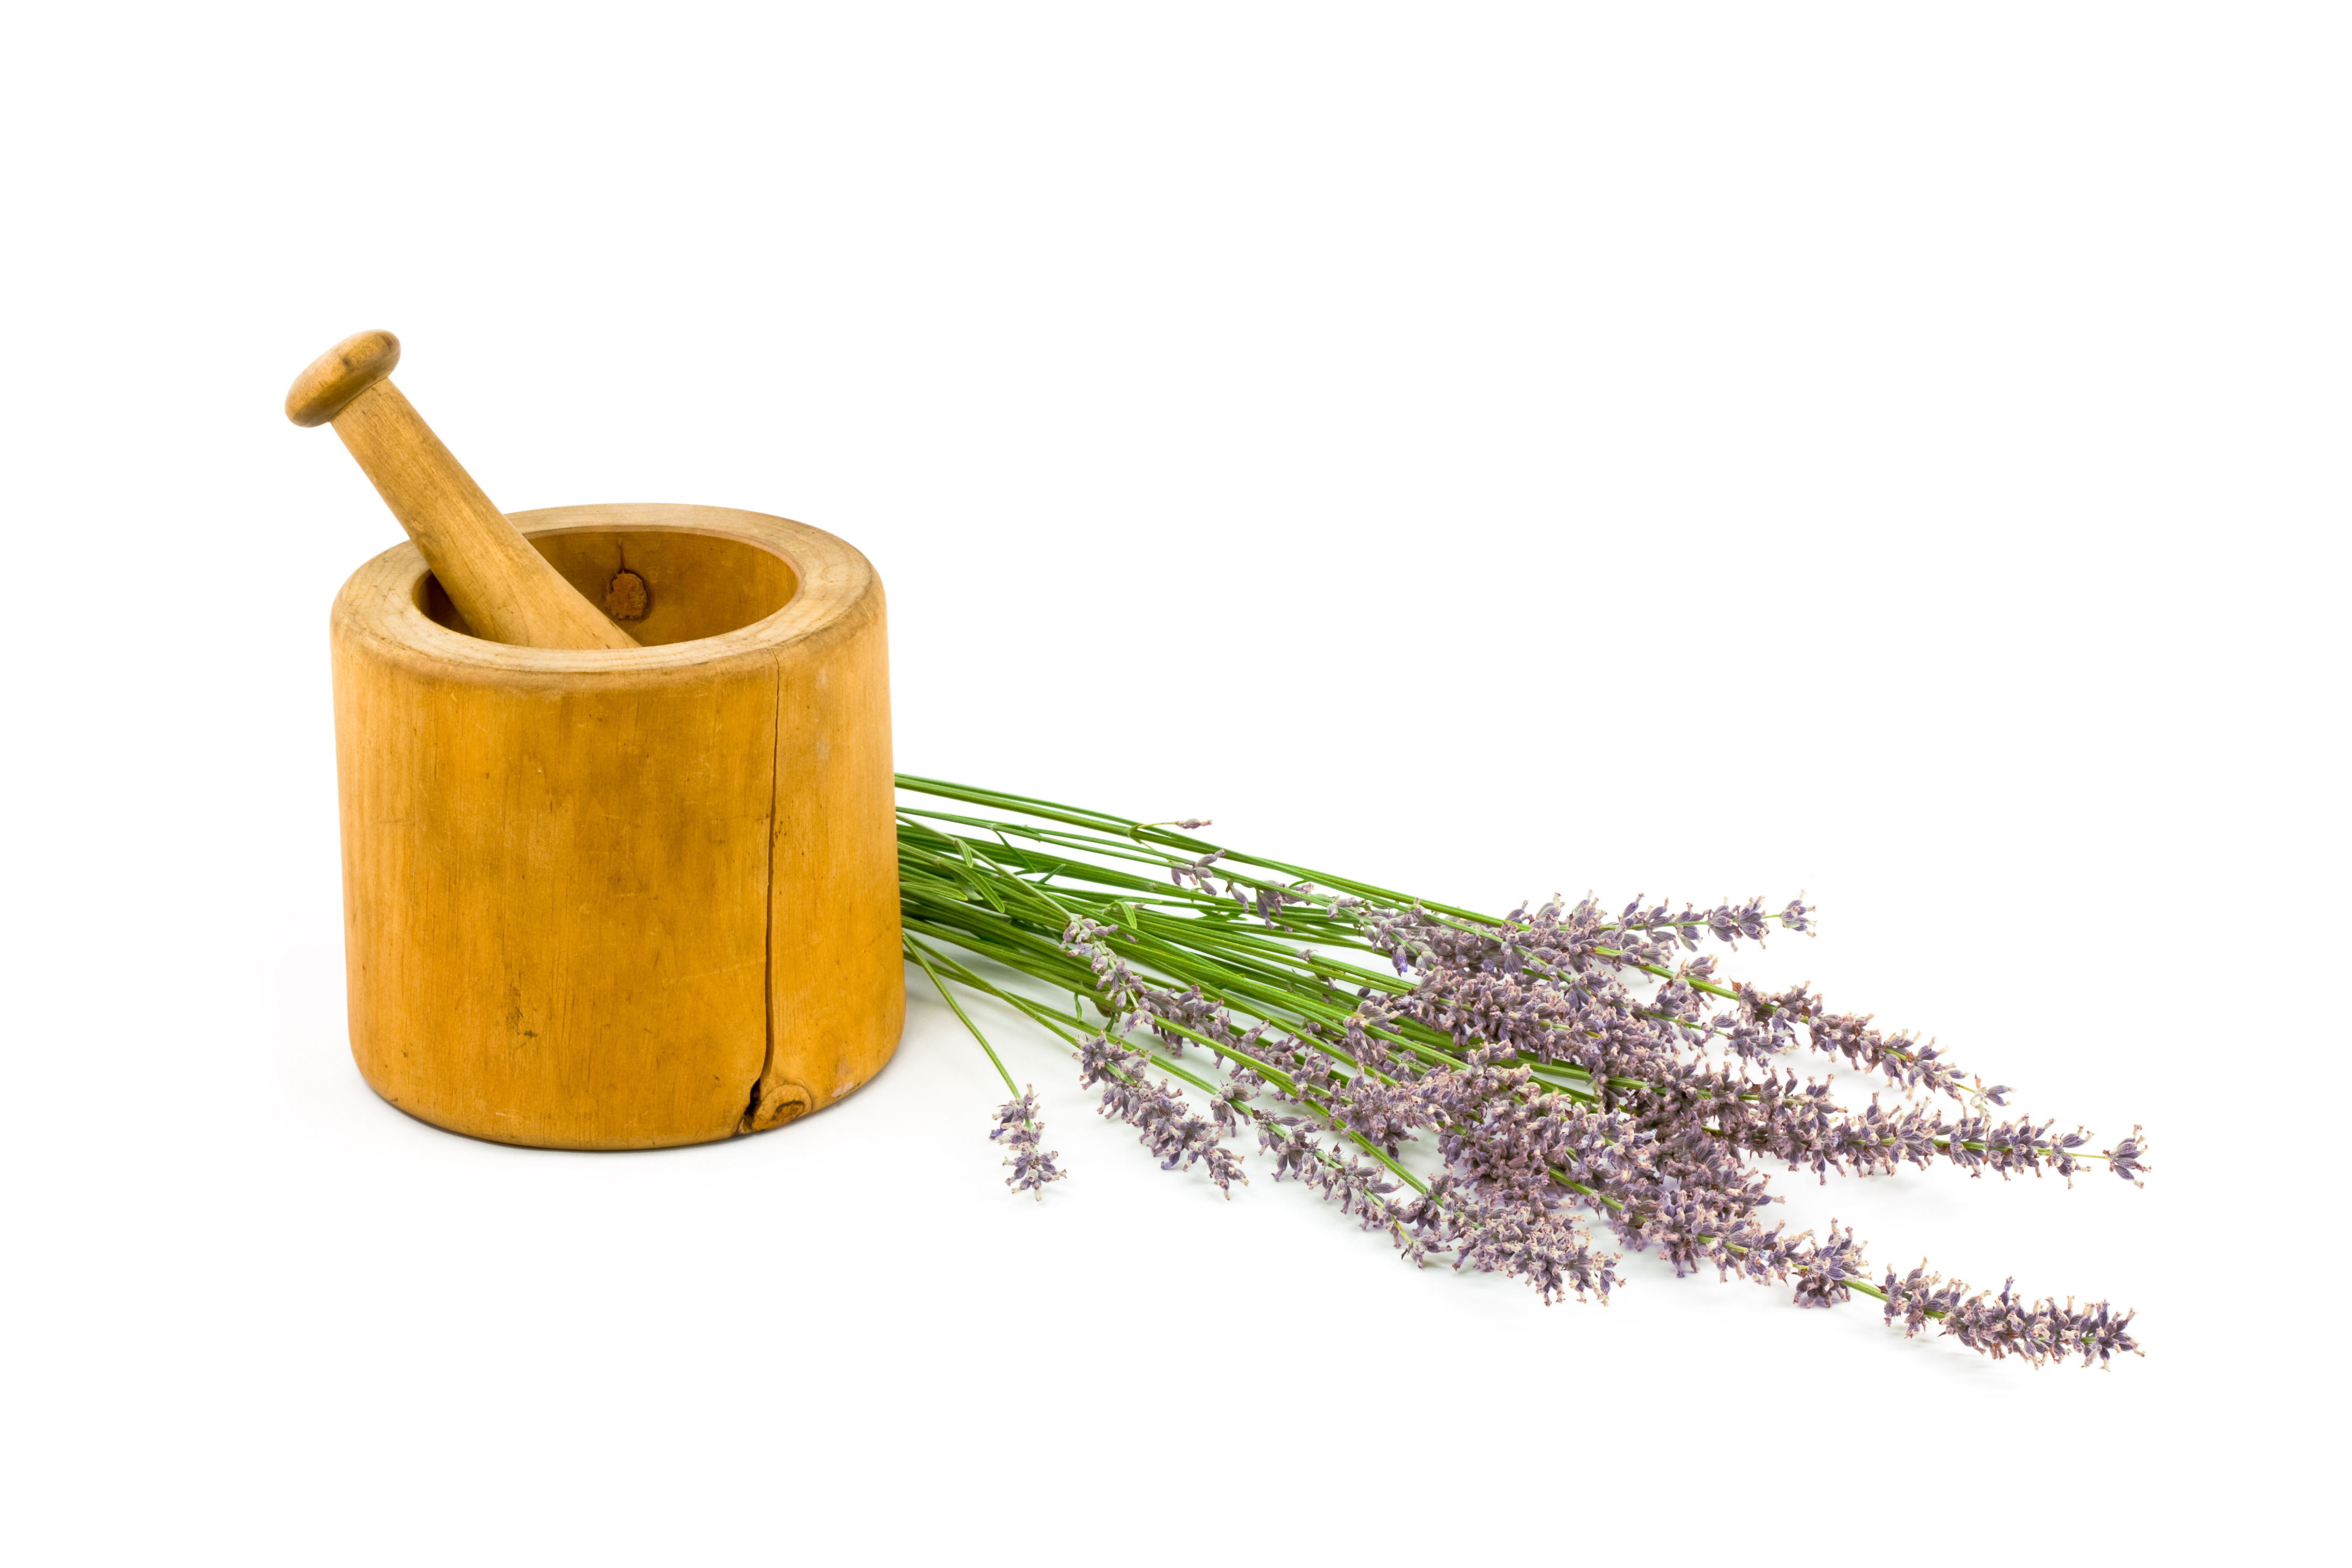 French Lavender with Mortar and Pestle